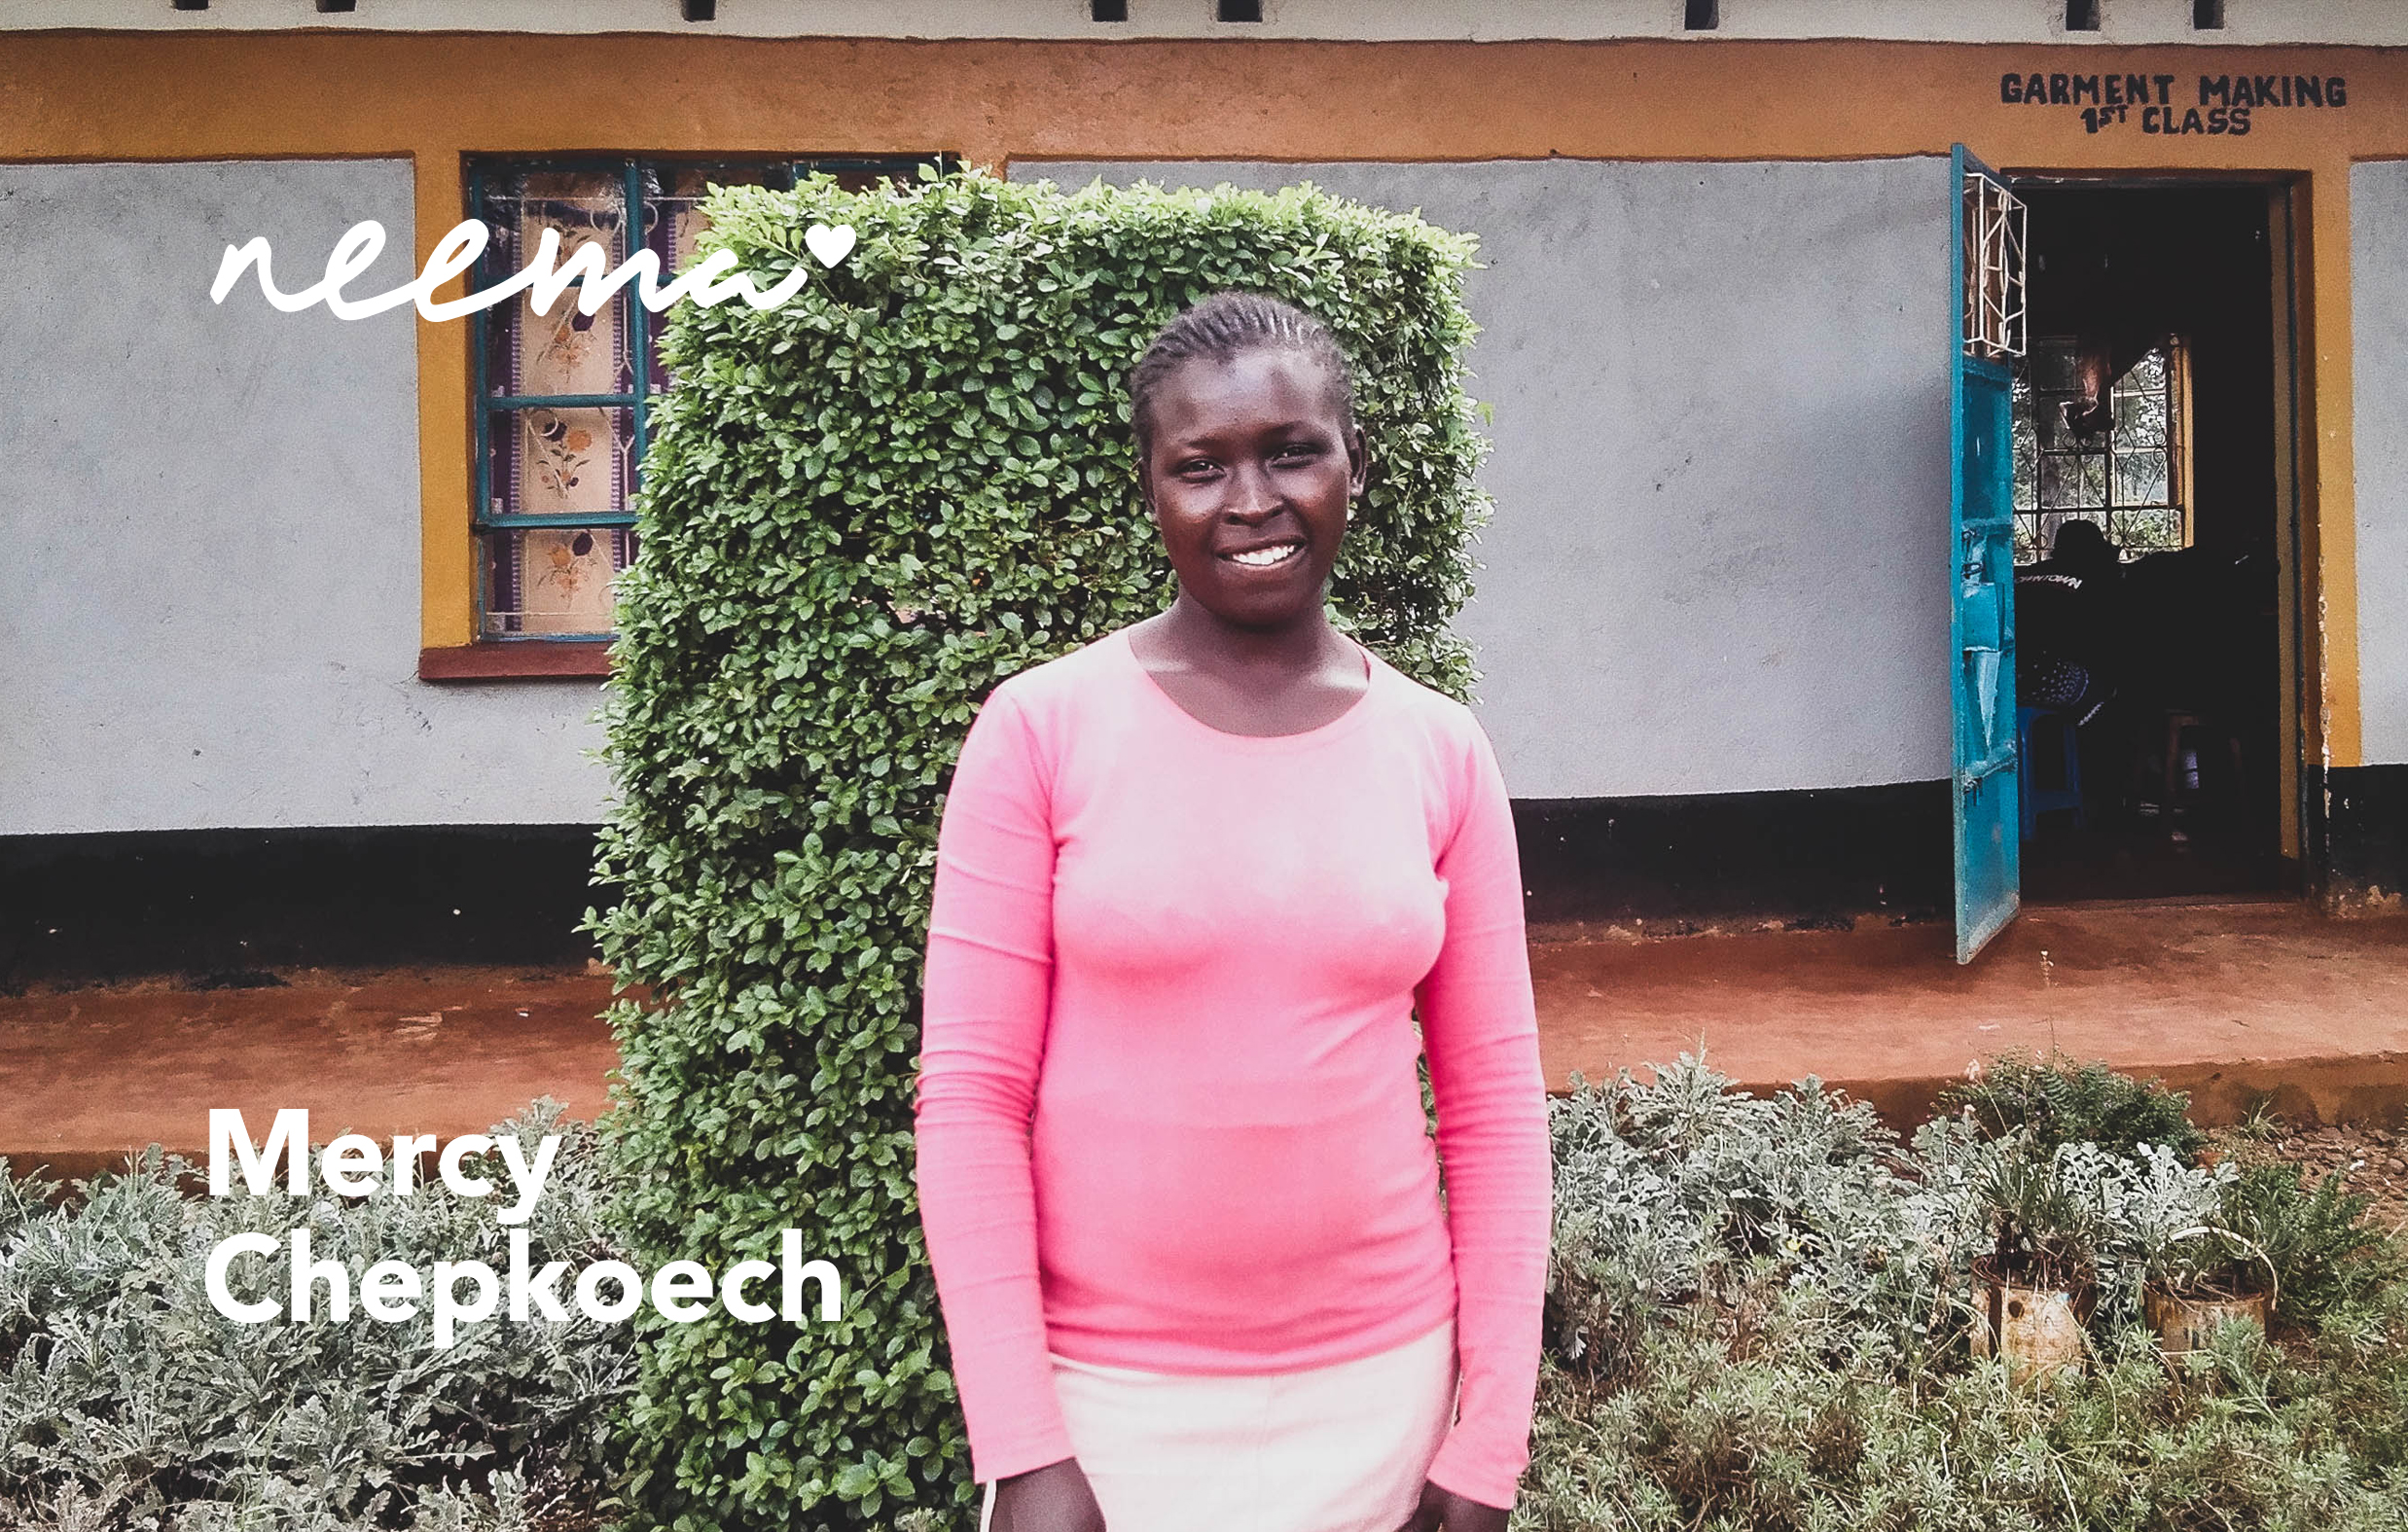 Mercy_Chepkoech_front.jpg